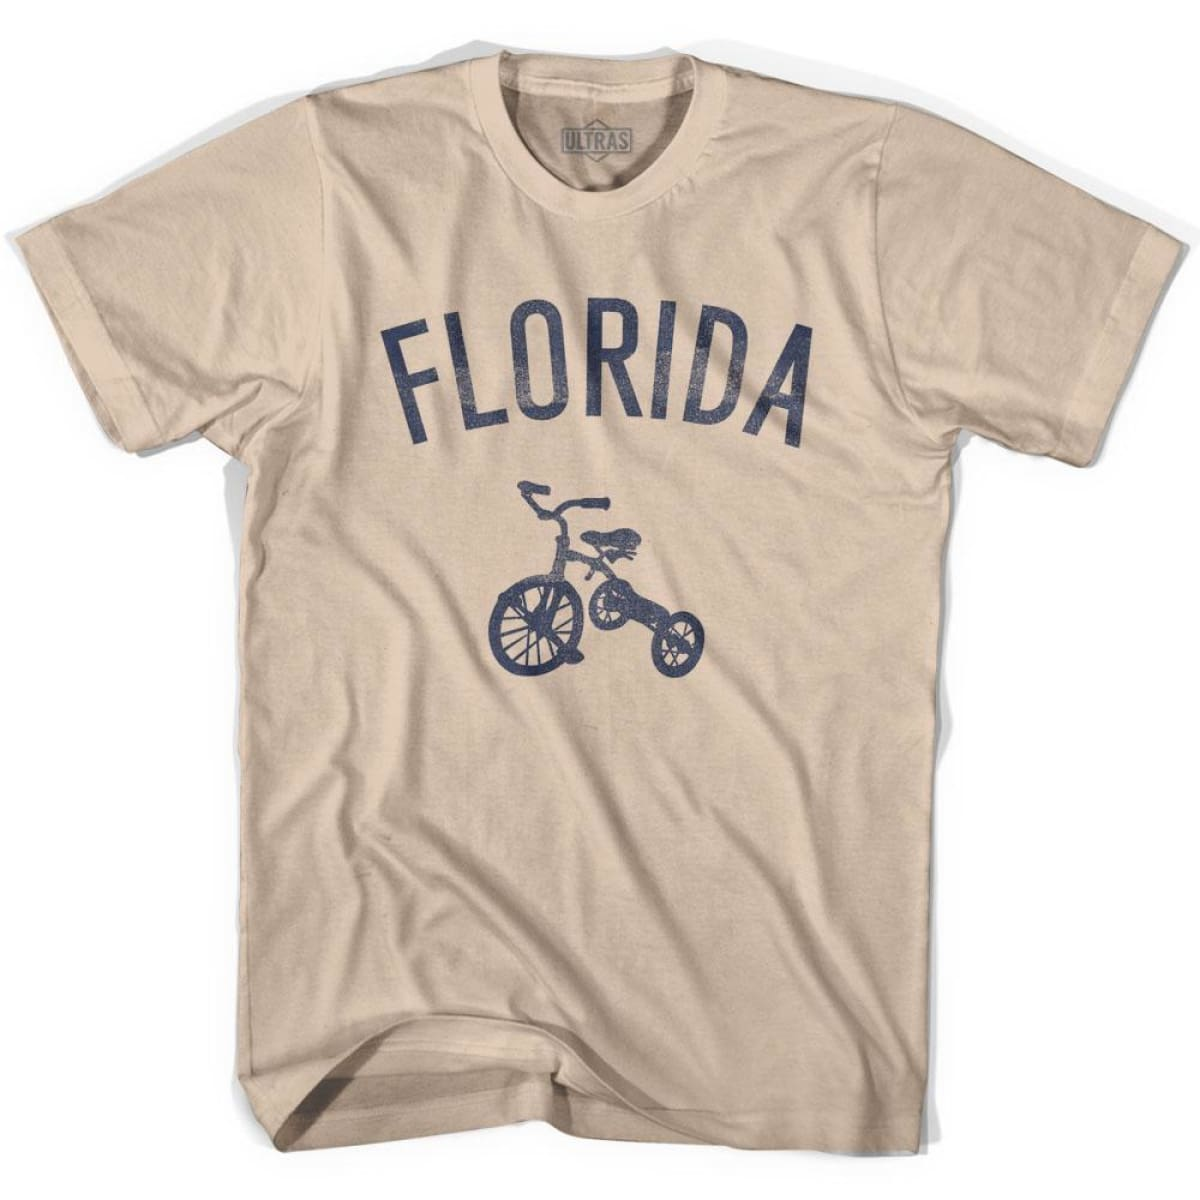 Florida State Tricycle Adult Cotton T-shirt - Creme / Adult Small - Tricycle State